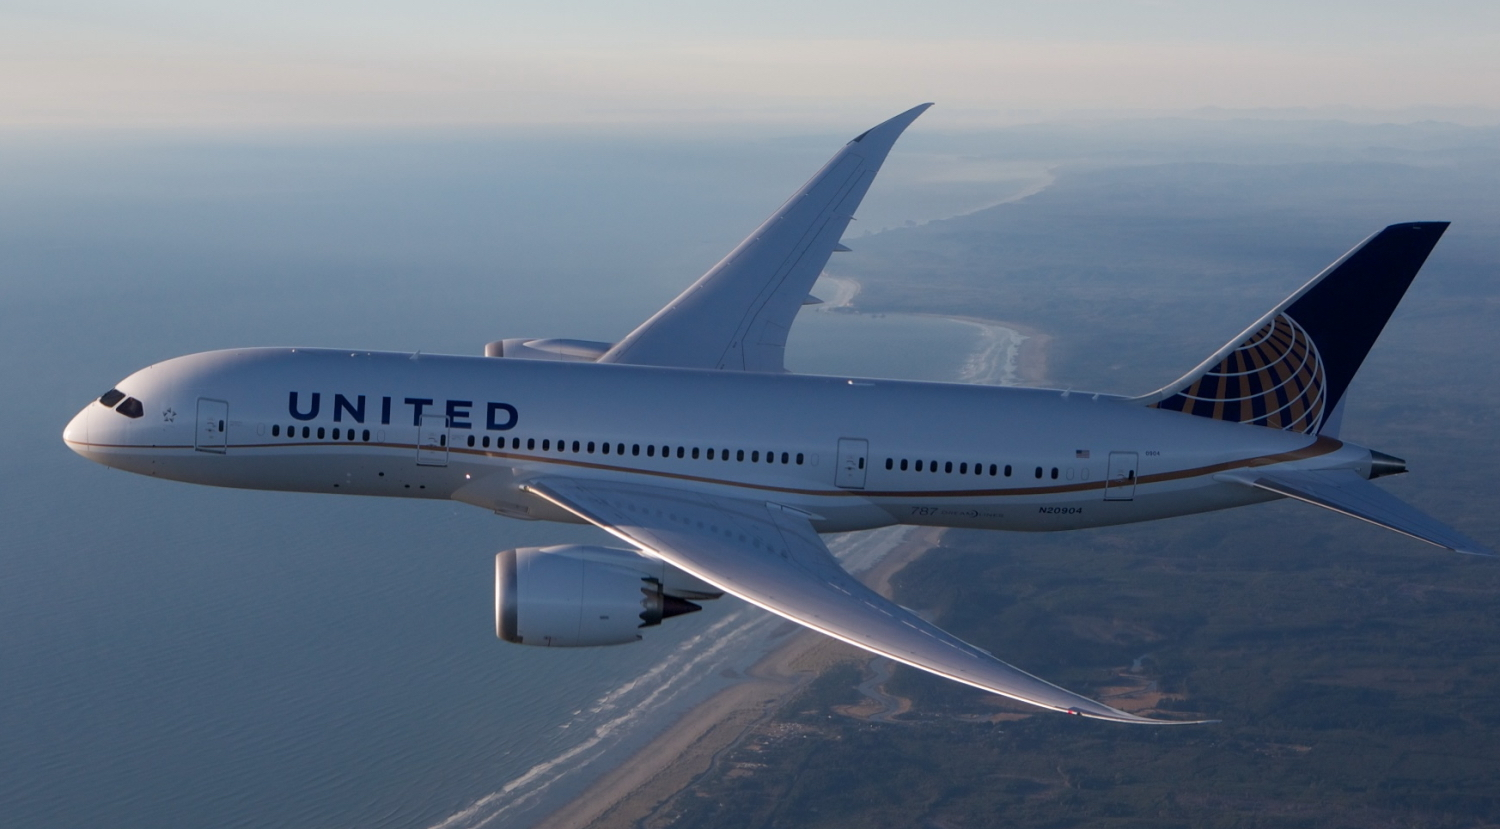 United Airlines Partners With Amazon's Digital Assistant. Benefits Of A Revocable Living Trust. Free Online Faxing Services Piano Mover Nj. Real Estate Agent Education Needed. Culinary Schools In Albuquerque. Work Order Dispatch Software. Service Engine Optimization Sas Etl Studio. How To Earn Interest In A Savings Account. Pay As You Go Cellular Plans